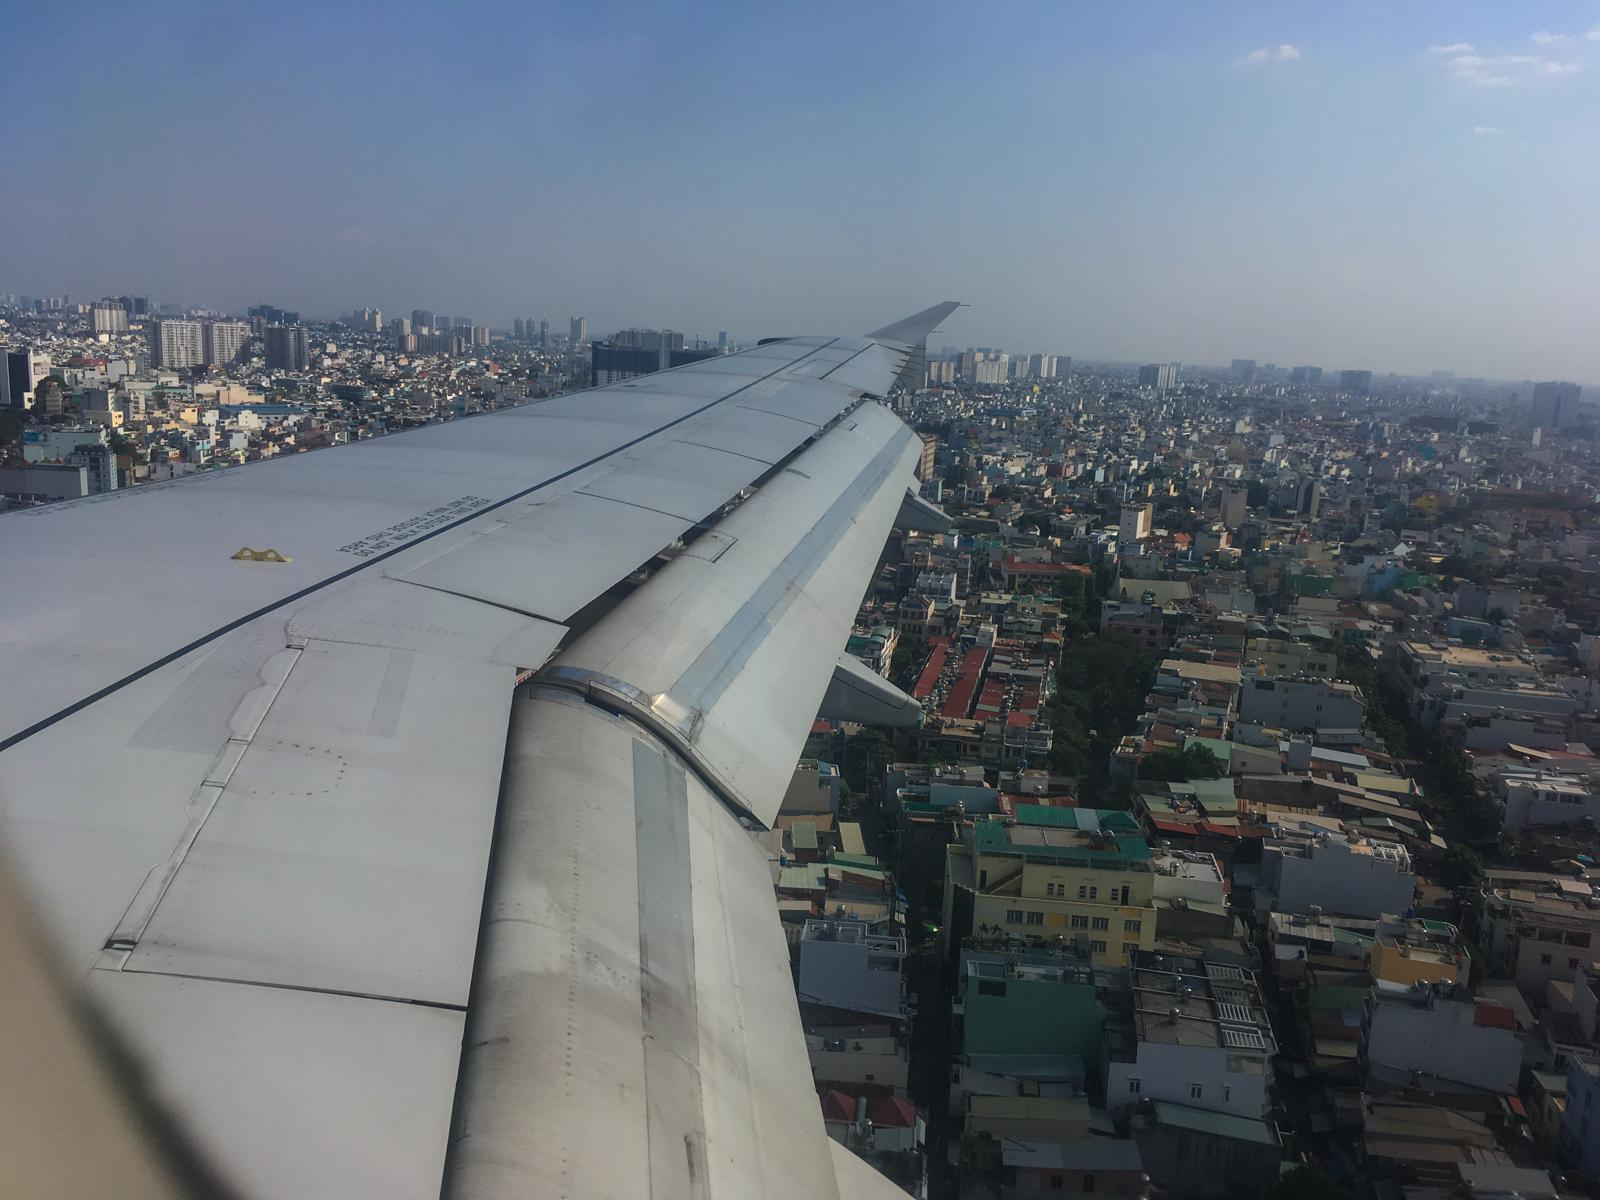 Plane Arriving in Saigon